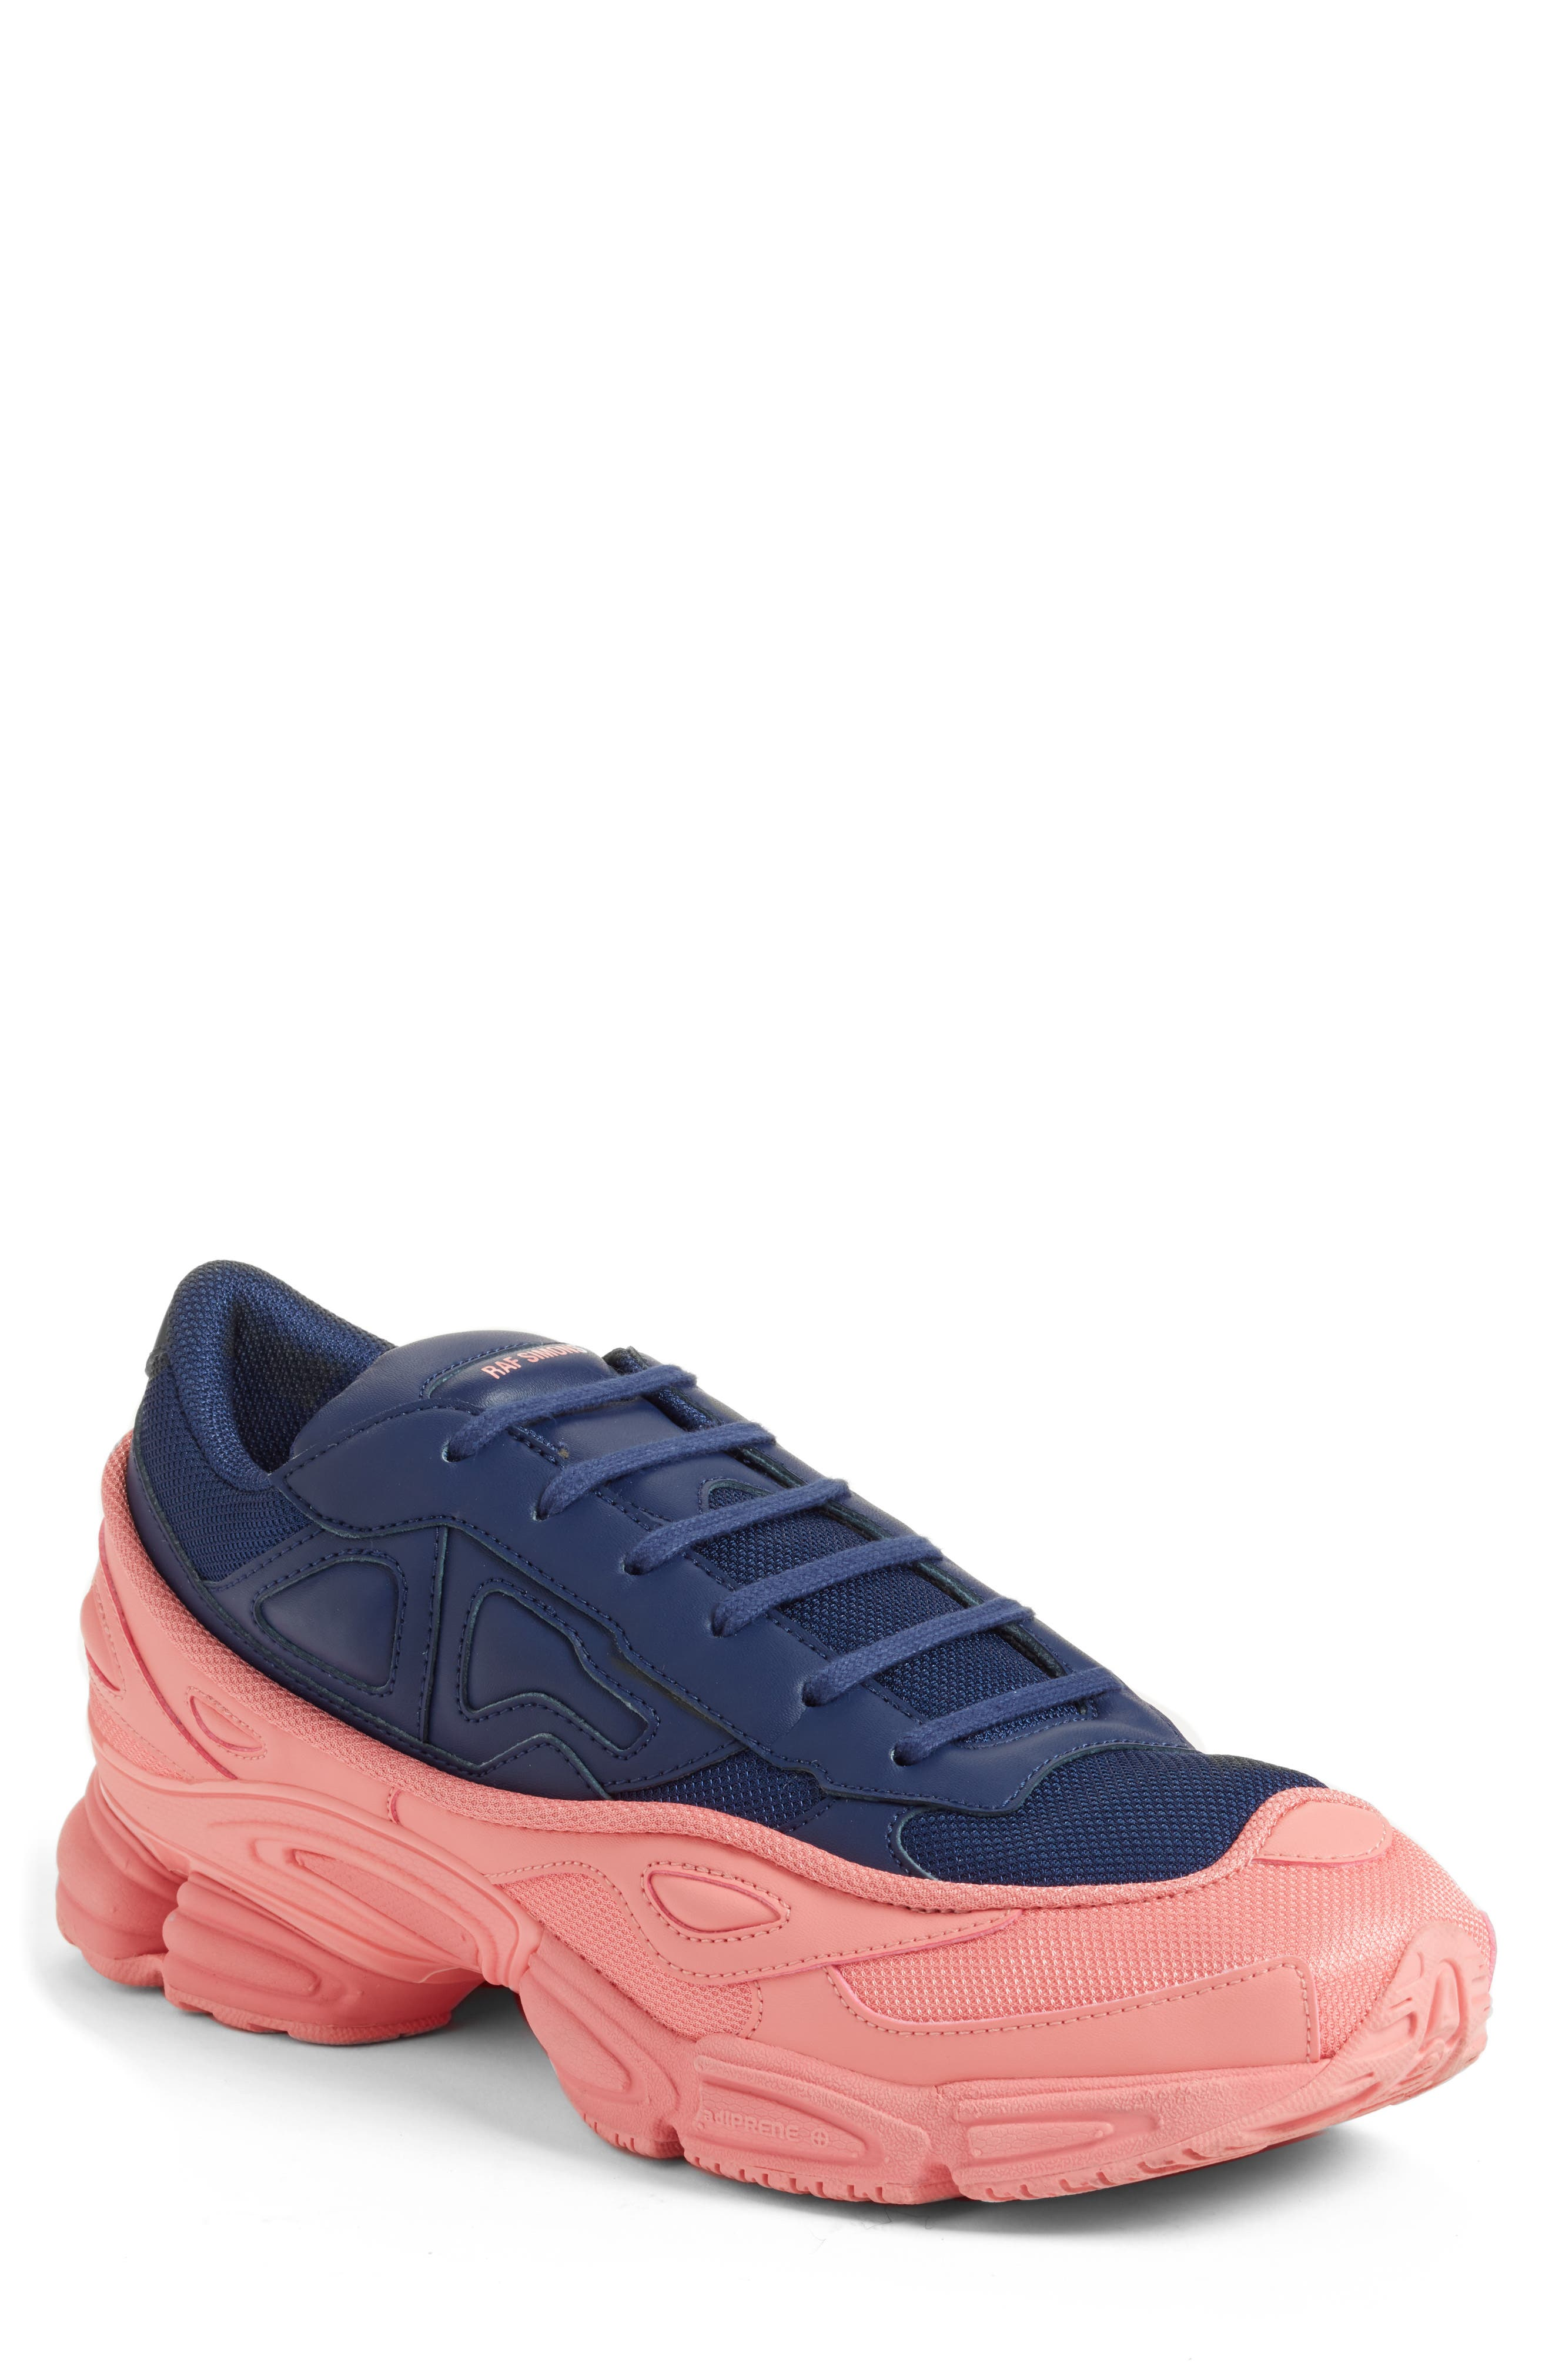 adidas by Raf Simons Ozweego III Sneaker,                         Main,                         color, TACTILE ROSE/ DARK BLUE